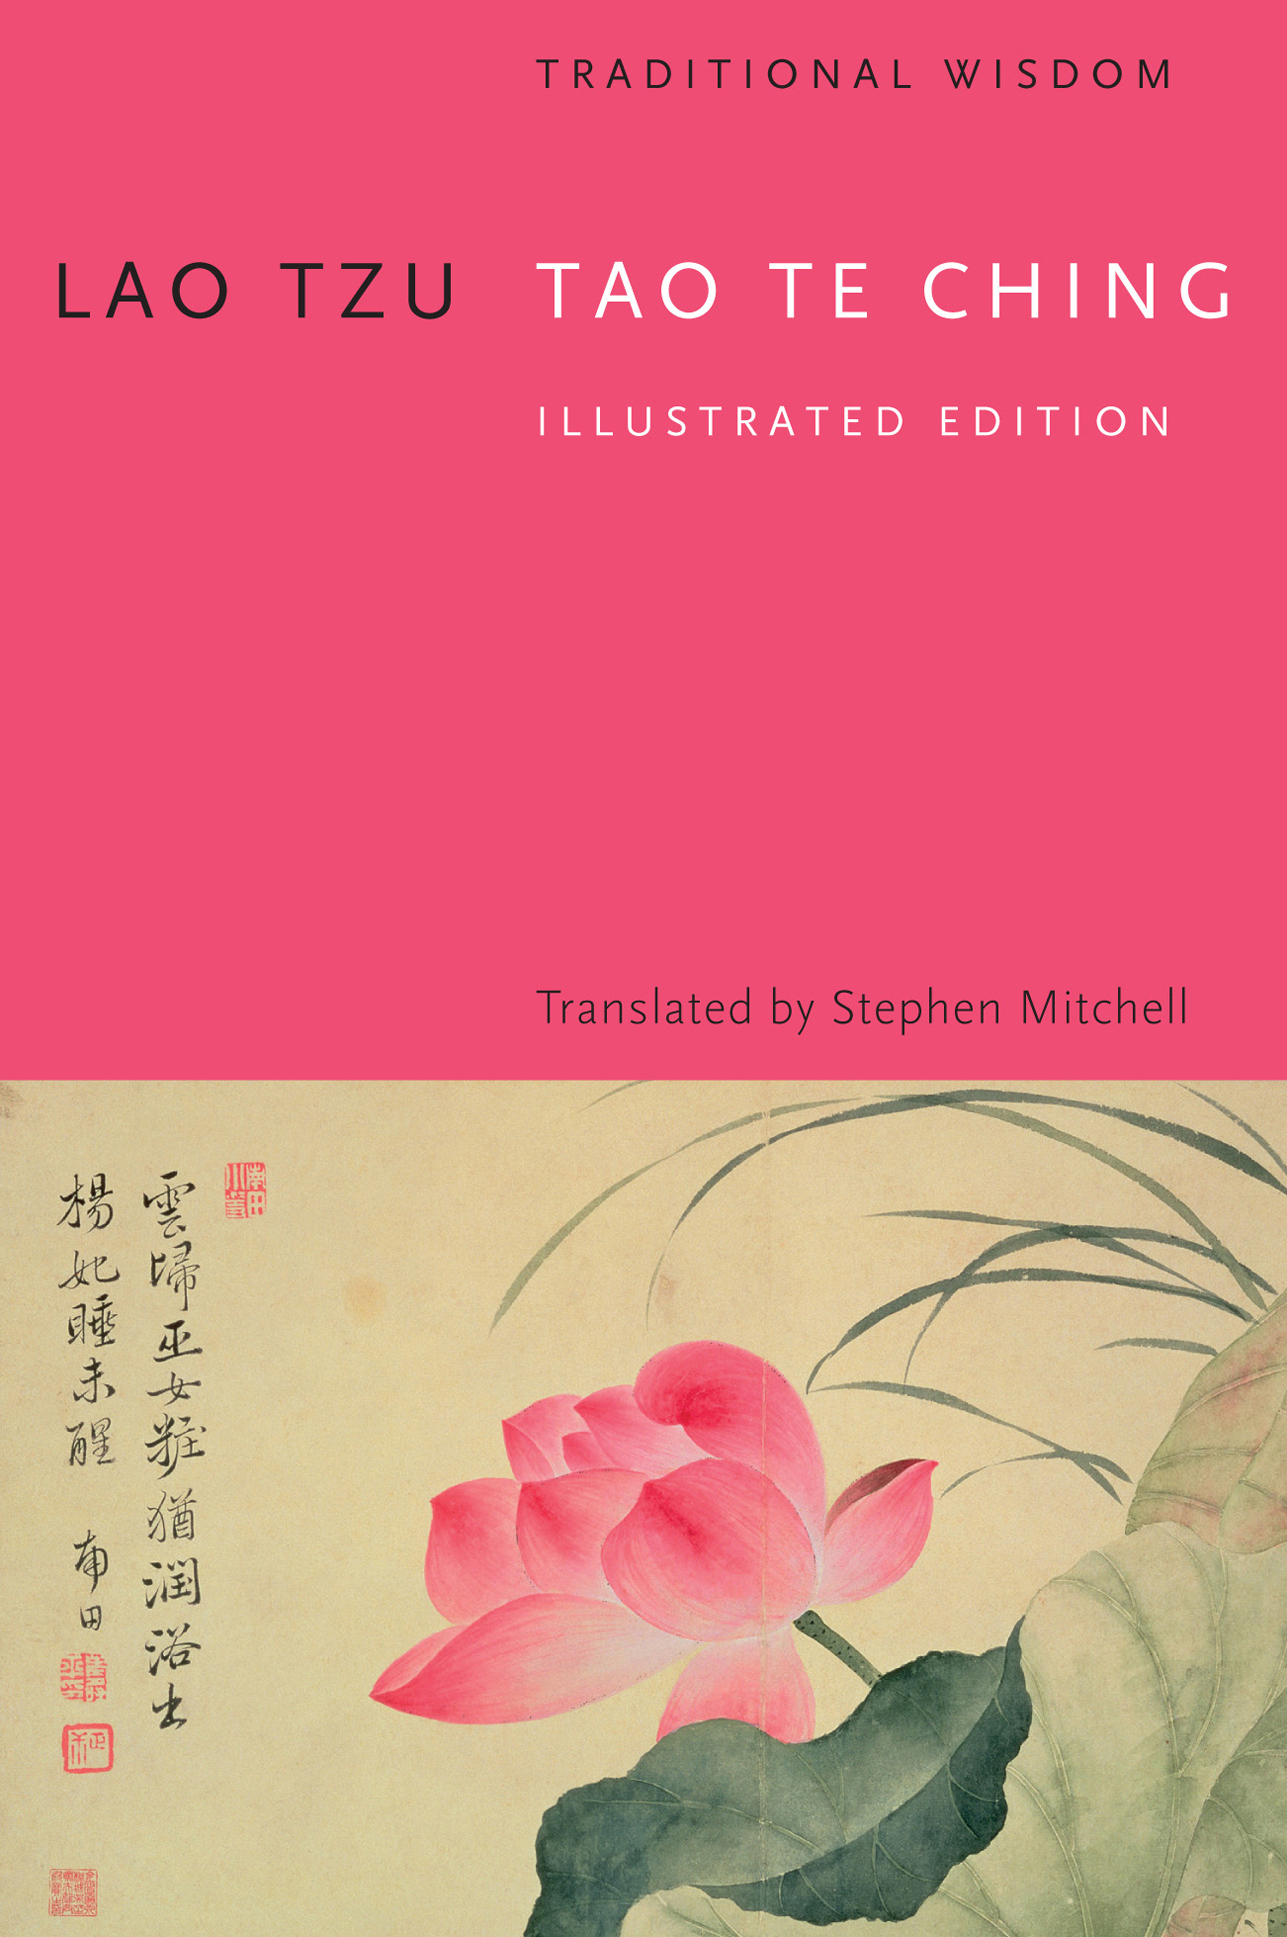 an analysis of lao tzus the philosophy of tao te ching